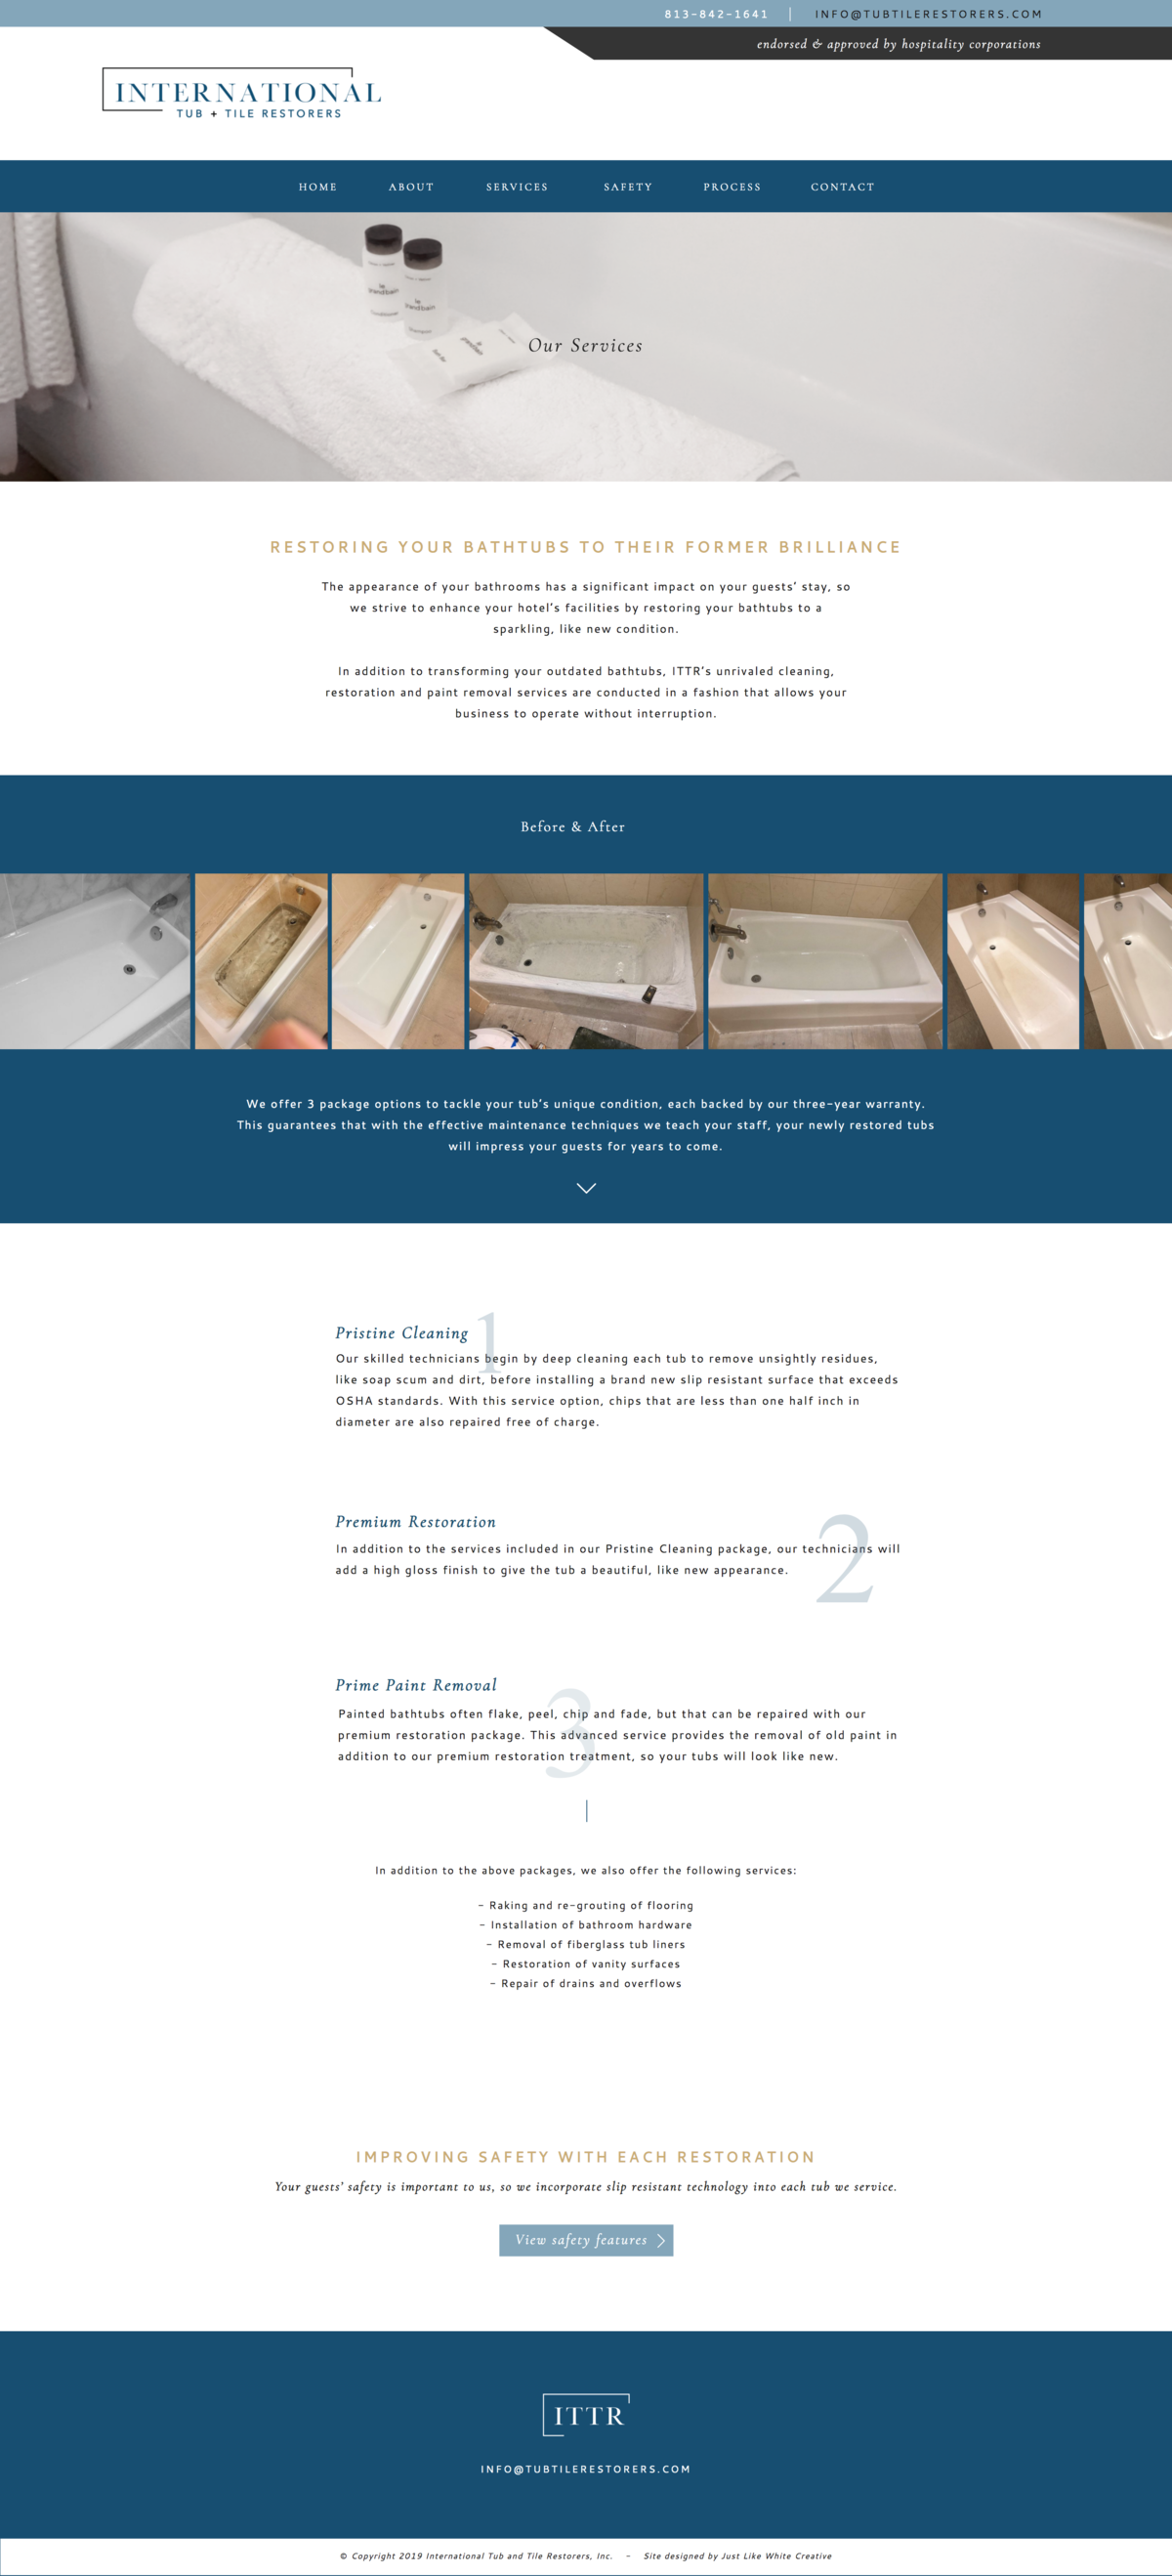 Professional website design by Tribble Design Co.